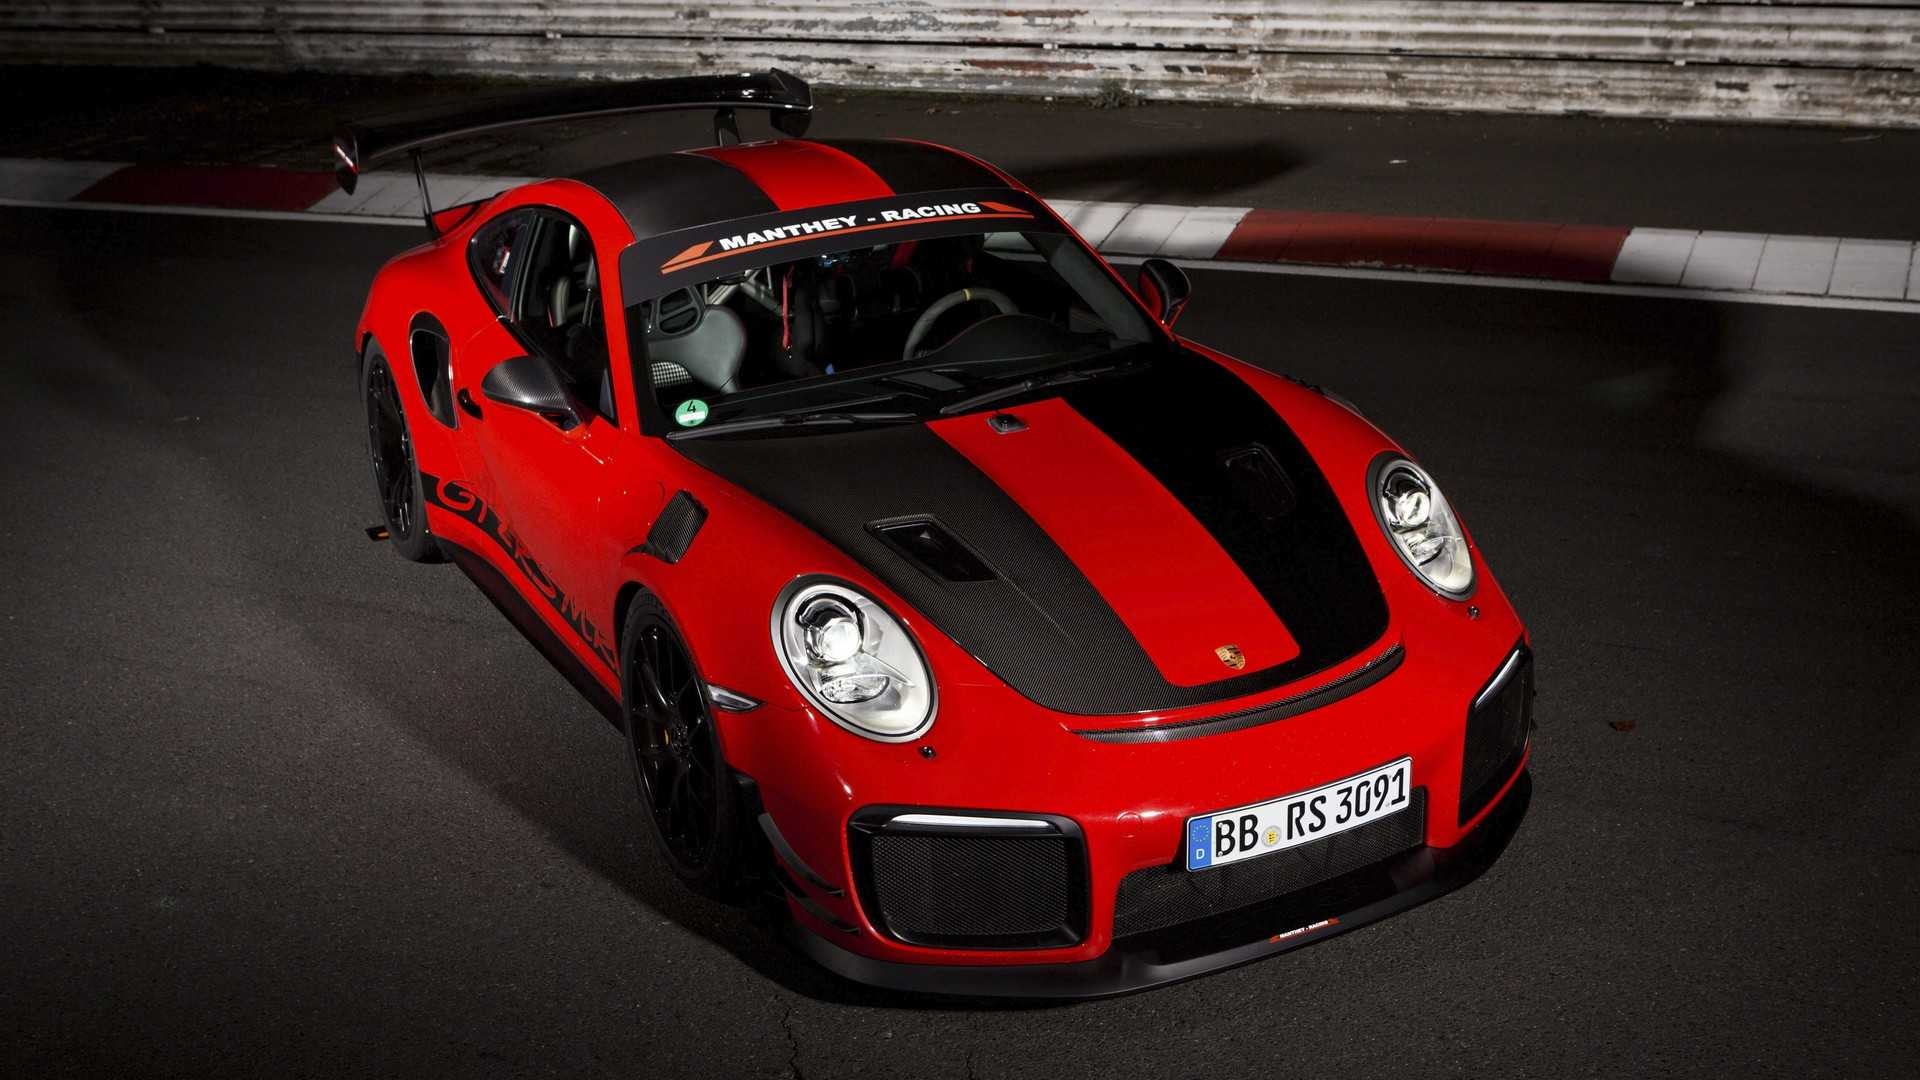 Porsche 911 Gt2 Rs Mr Becomes Fastest Road Legal Car